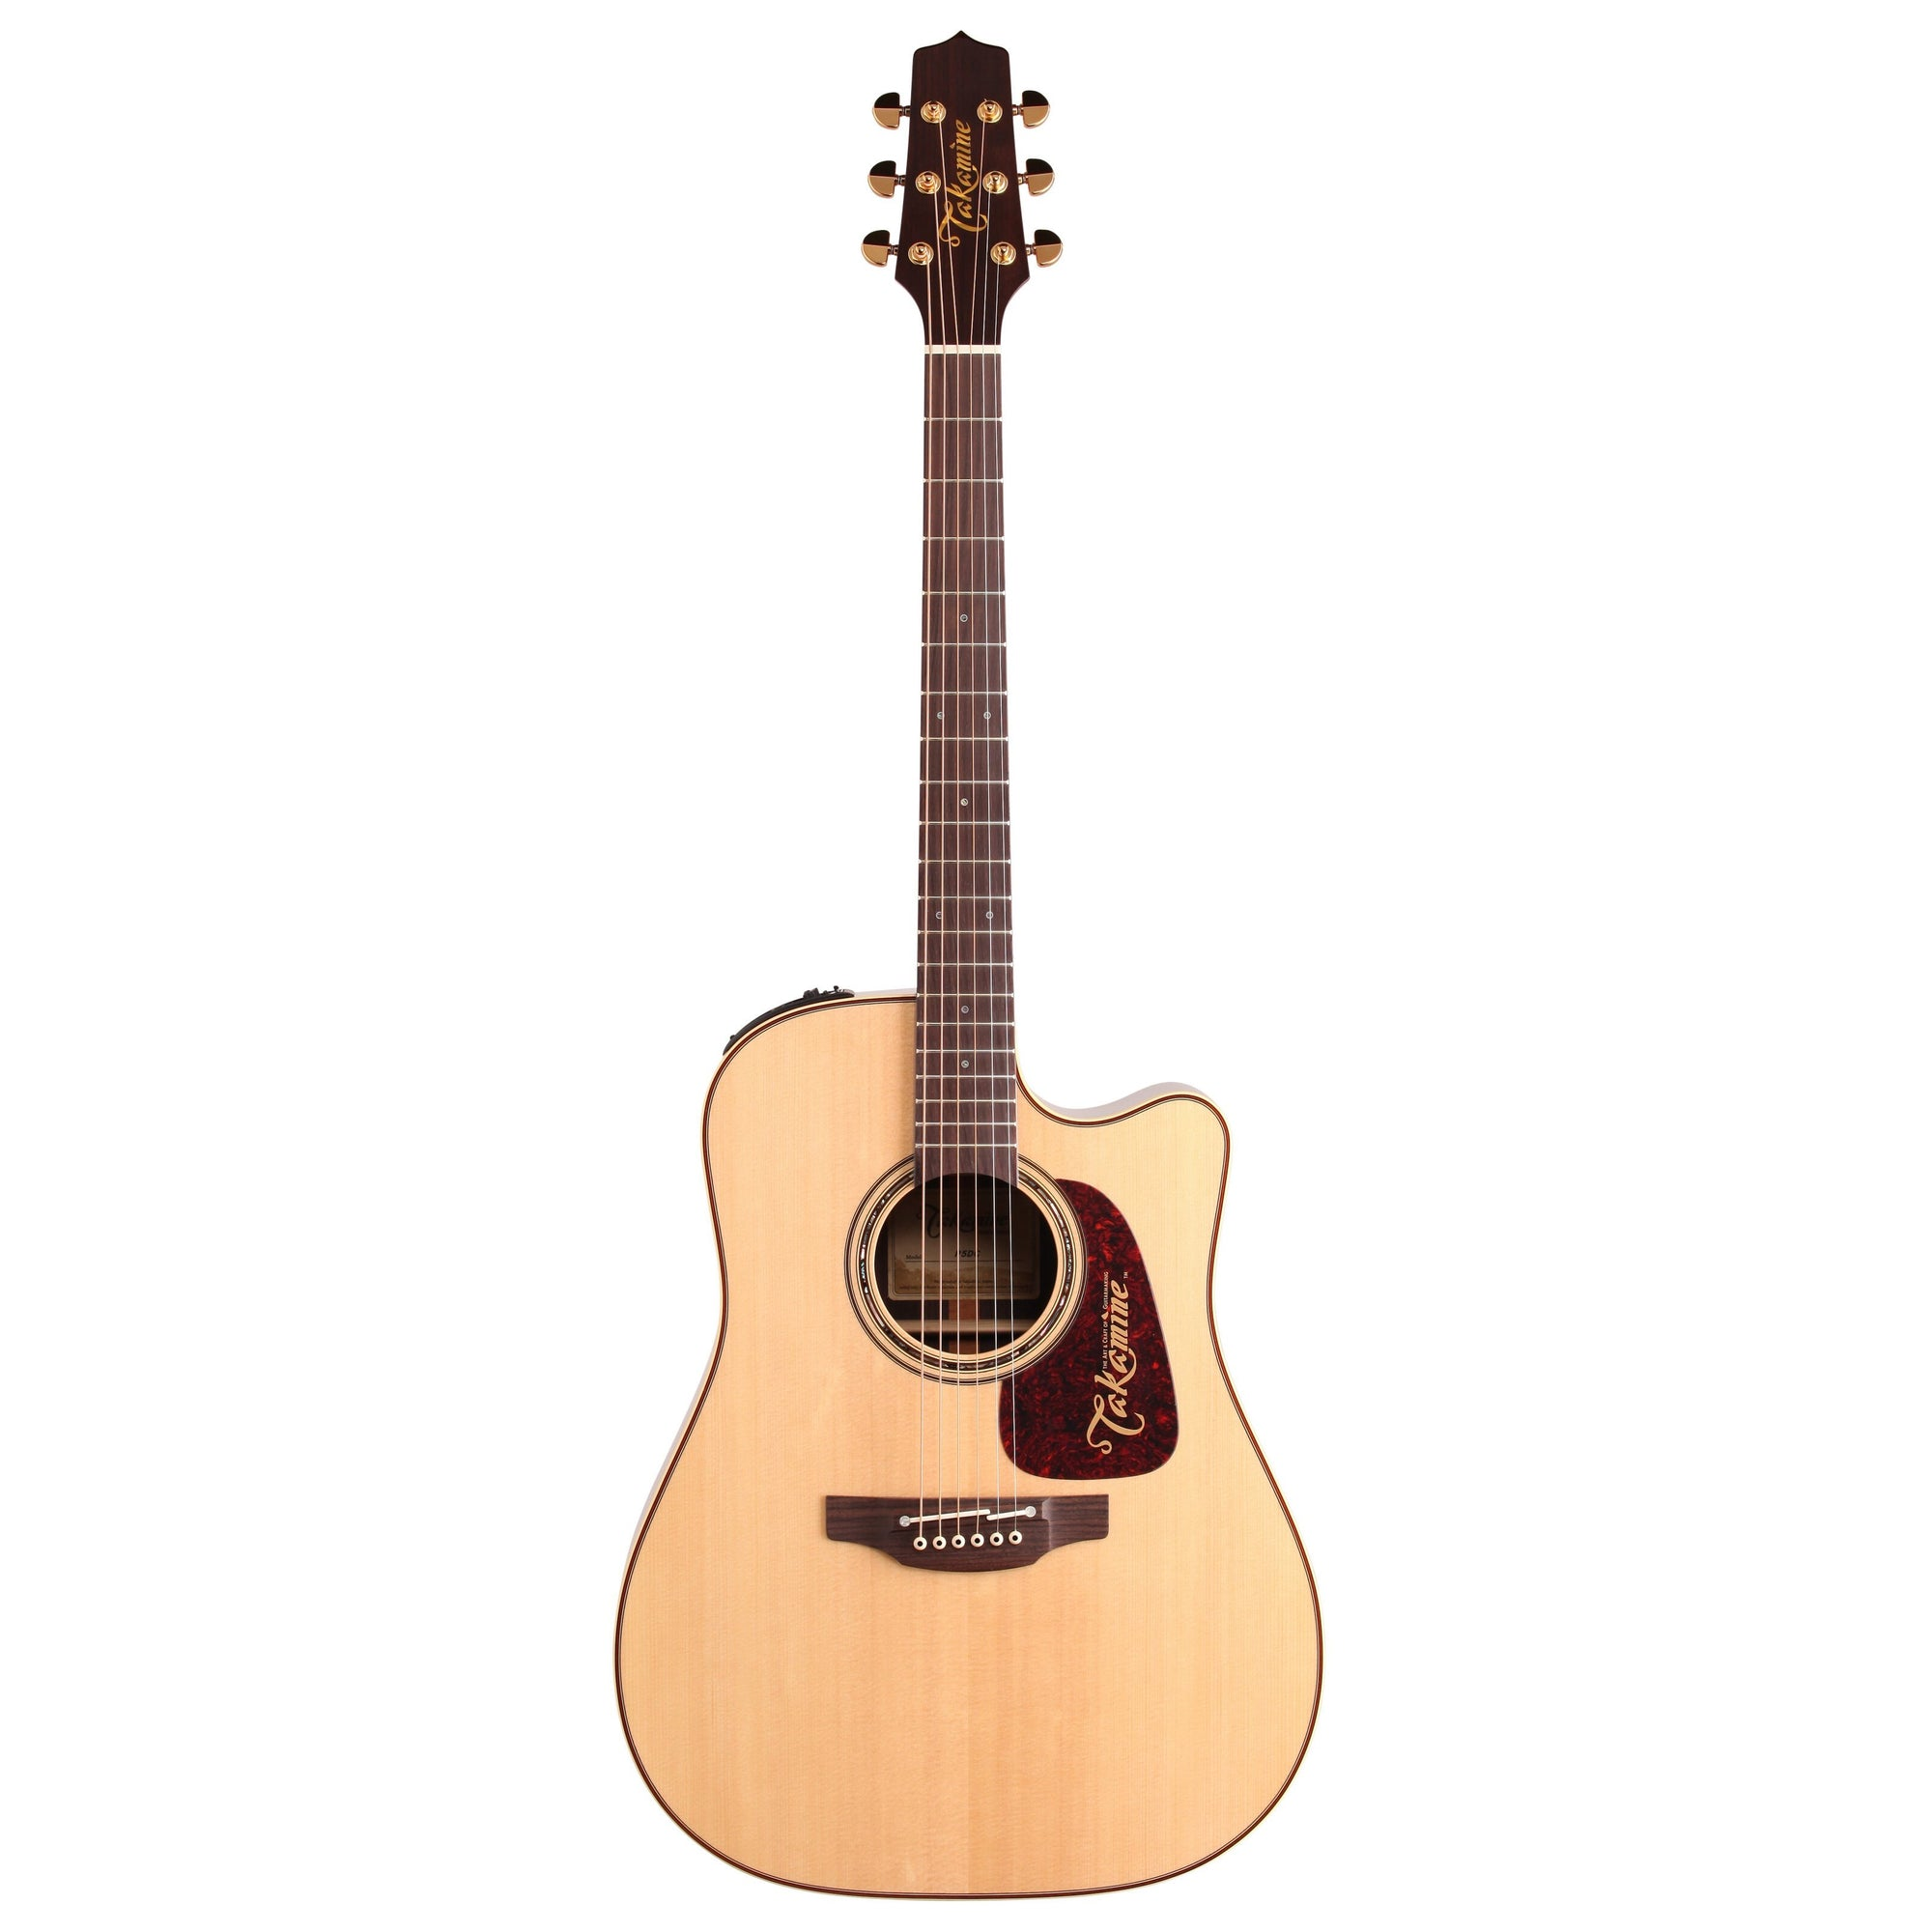 Takamine P5DC Pro Series Dreadnought Acoustic Guitar (with Case)